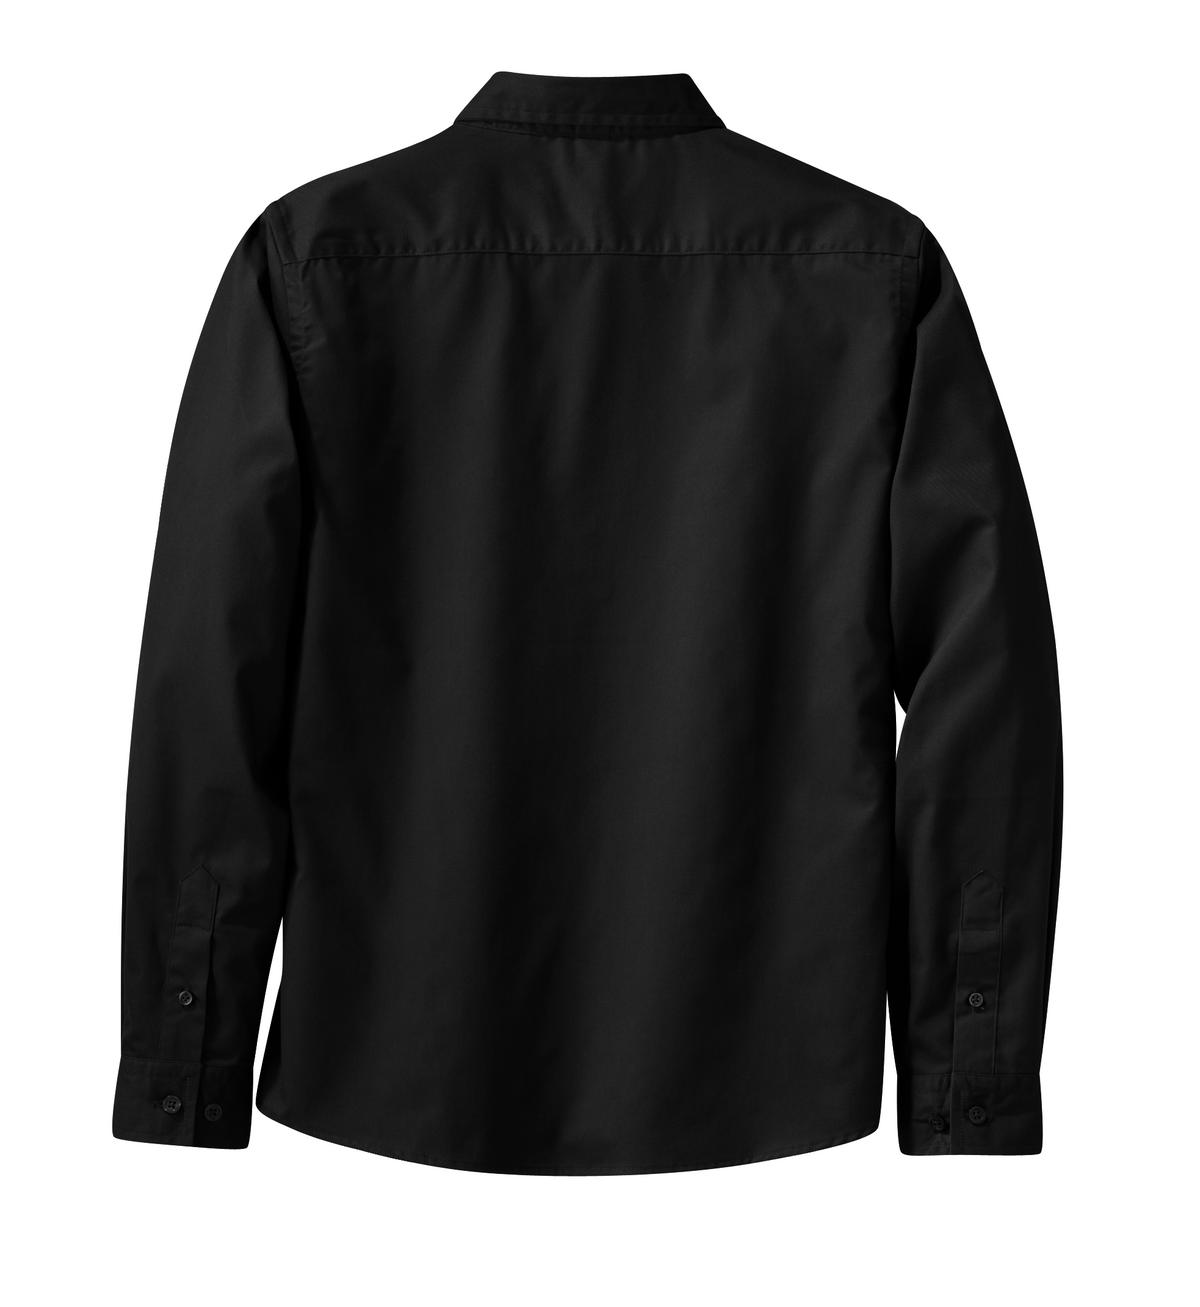 Mafoose Women's Long Sleeve Easy Care Shirt Black/ Light Stone-Back